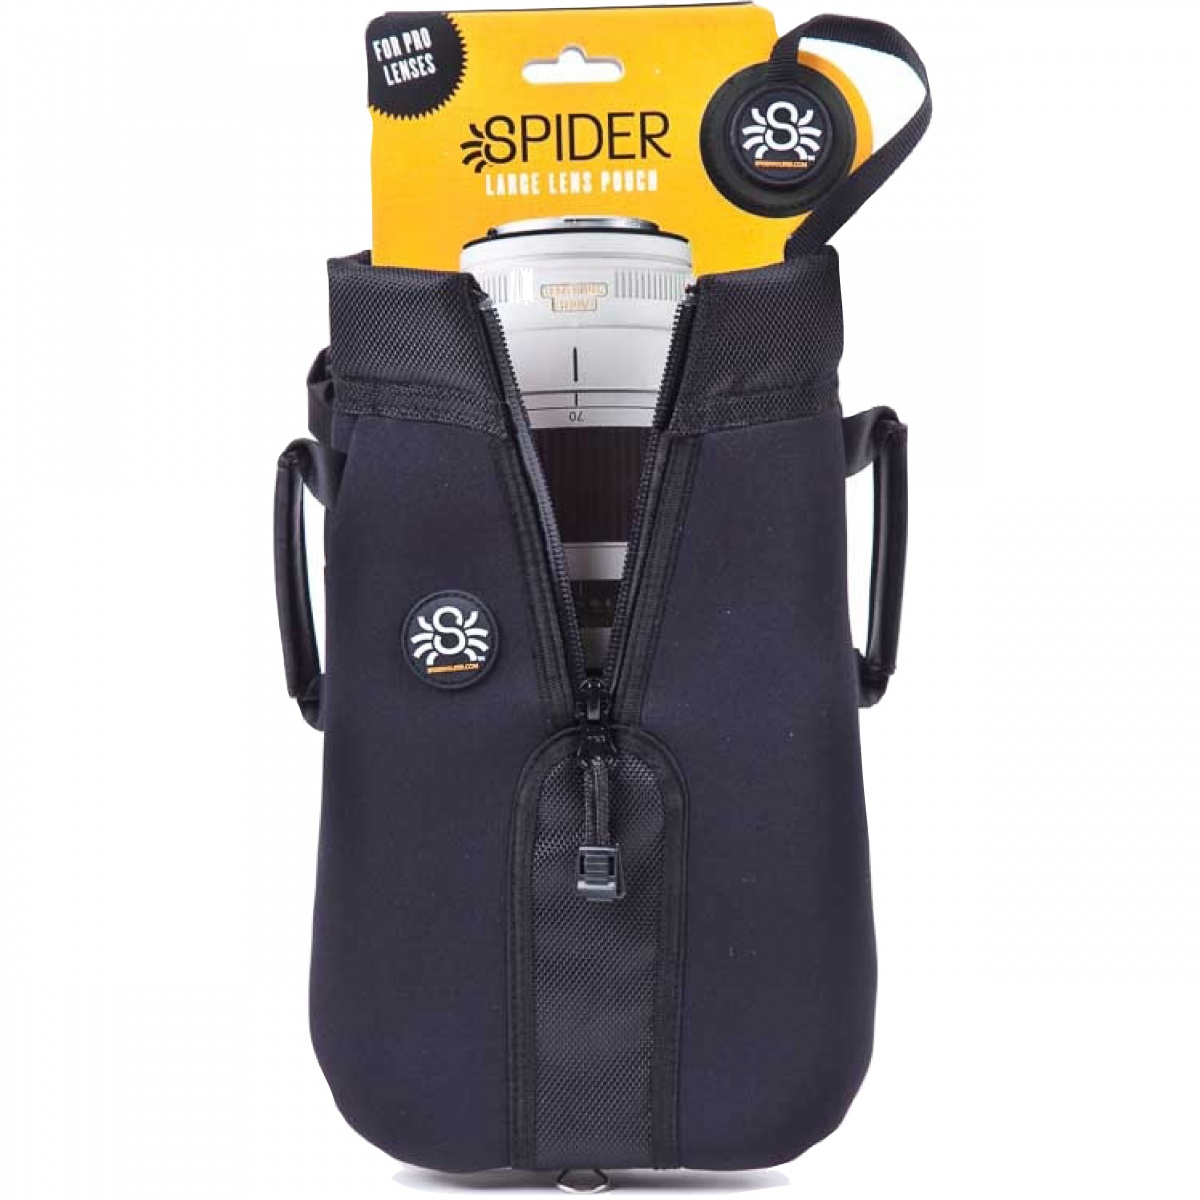 Spider Pro Lens Pouch Large